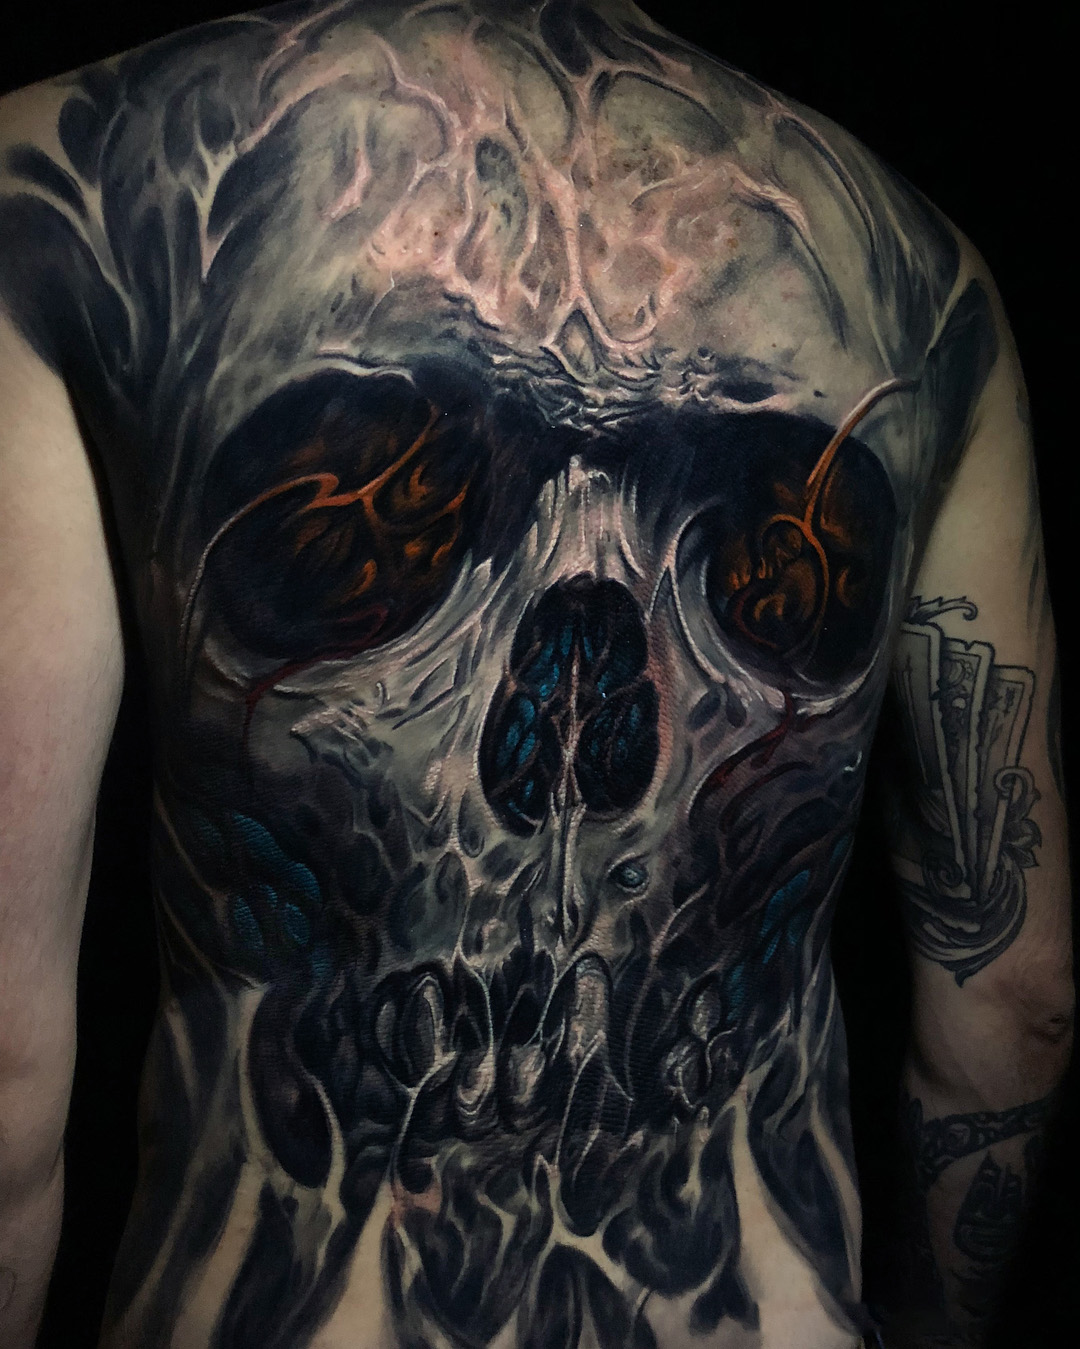 Scary tattoo - Skull on the whole back